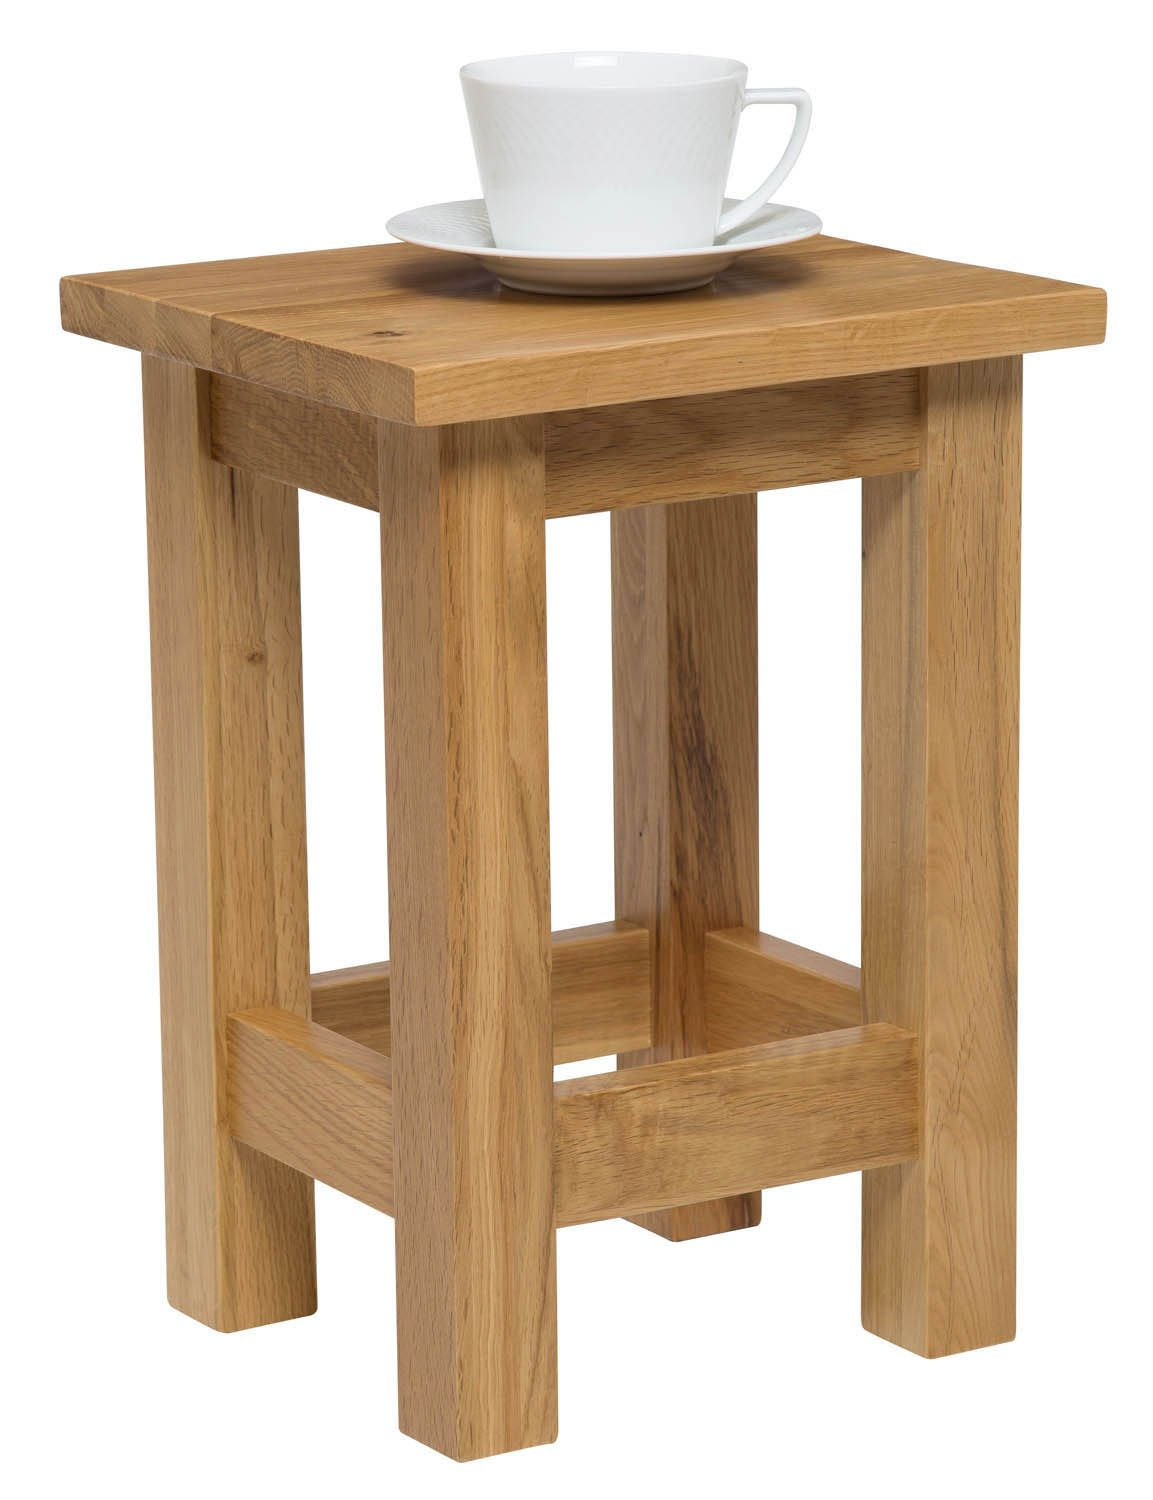 Waverly oak small side table in light finish solid wooden slim occasional ebay Low wooden coffee table